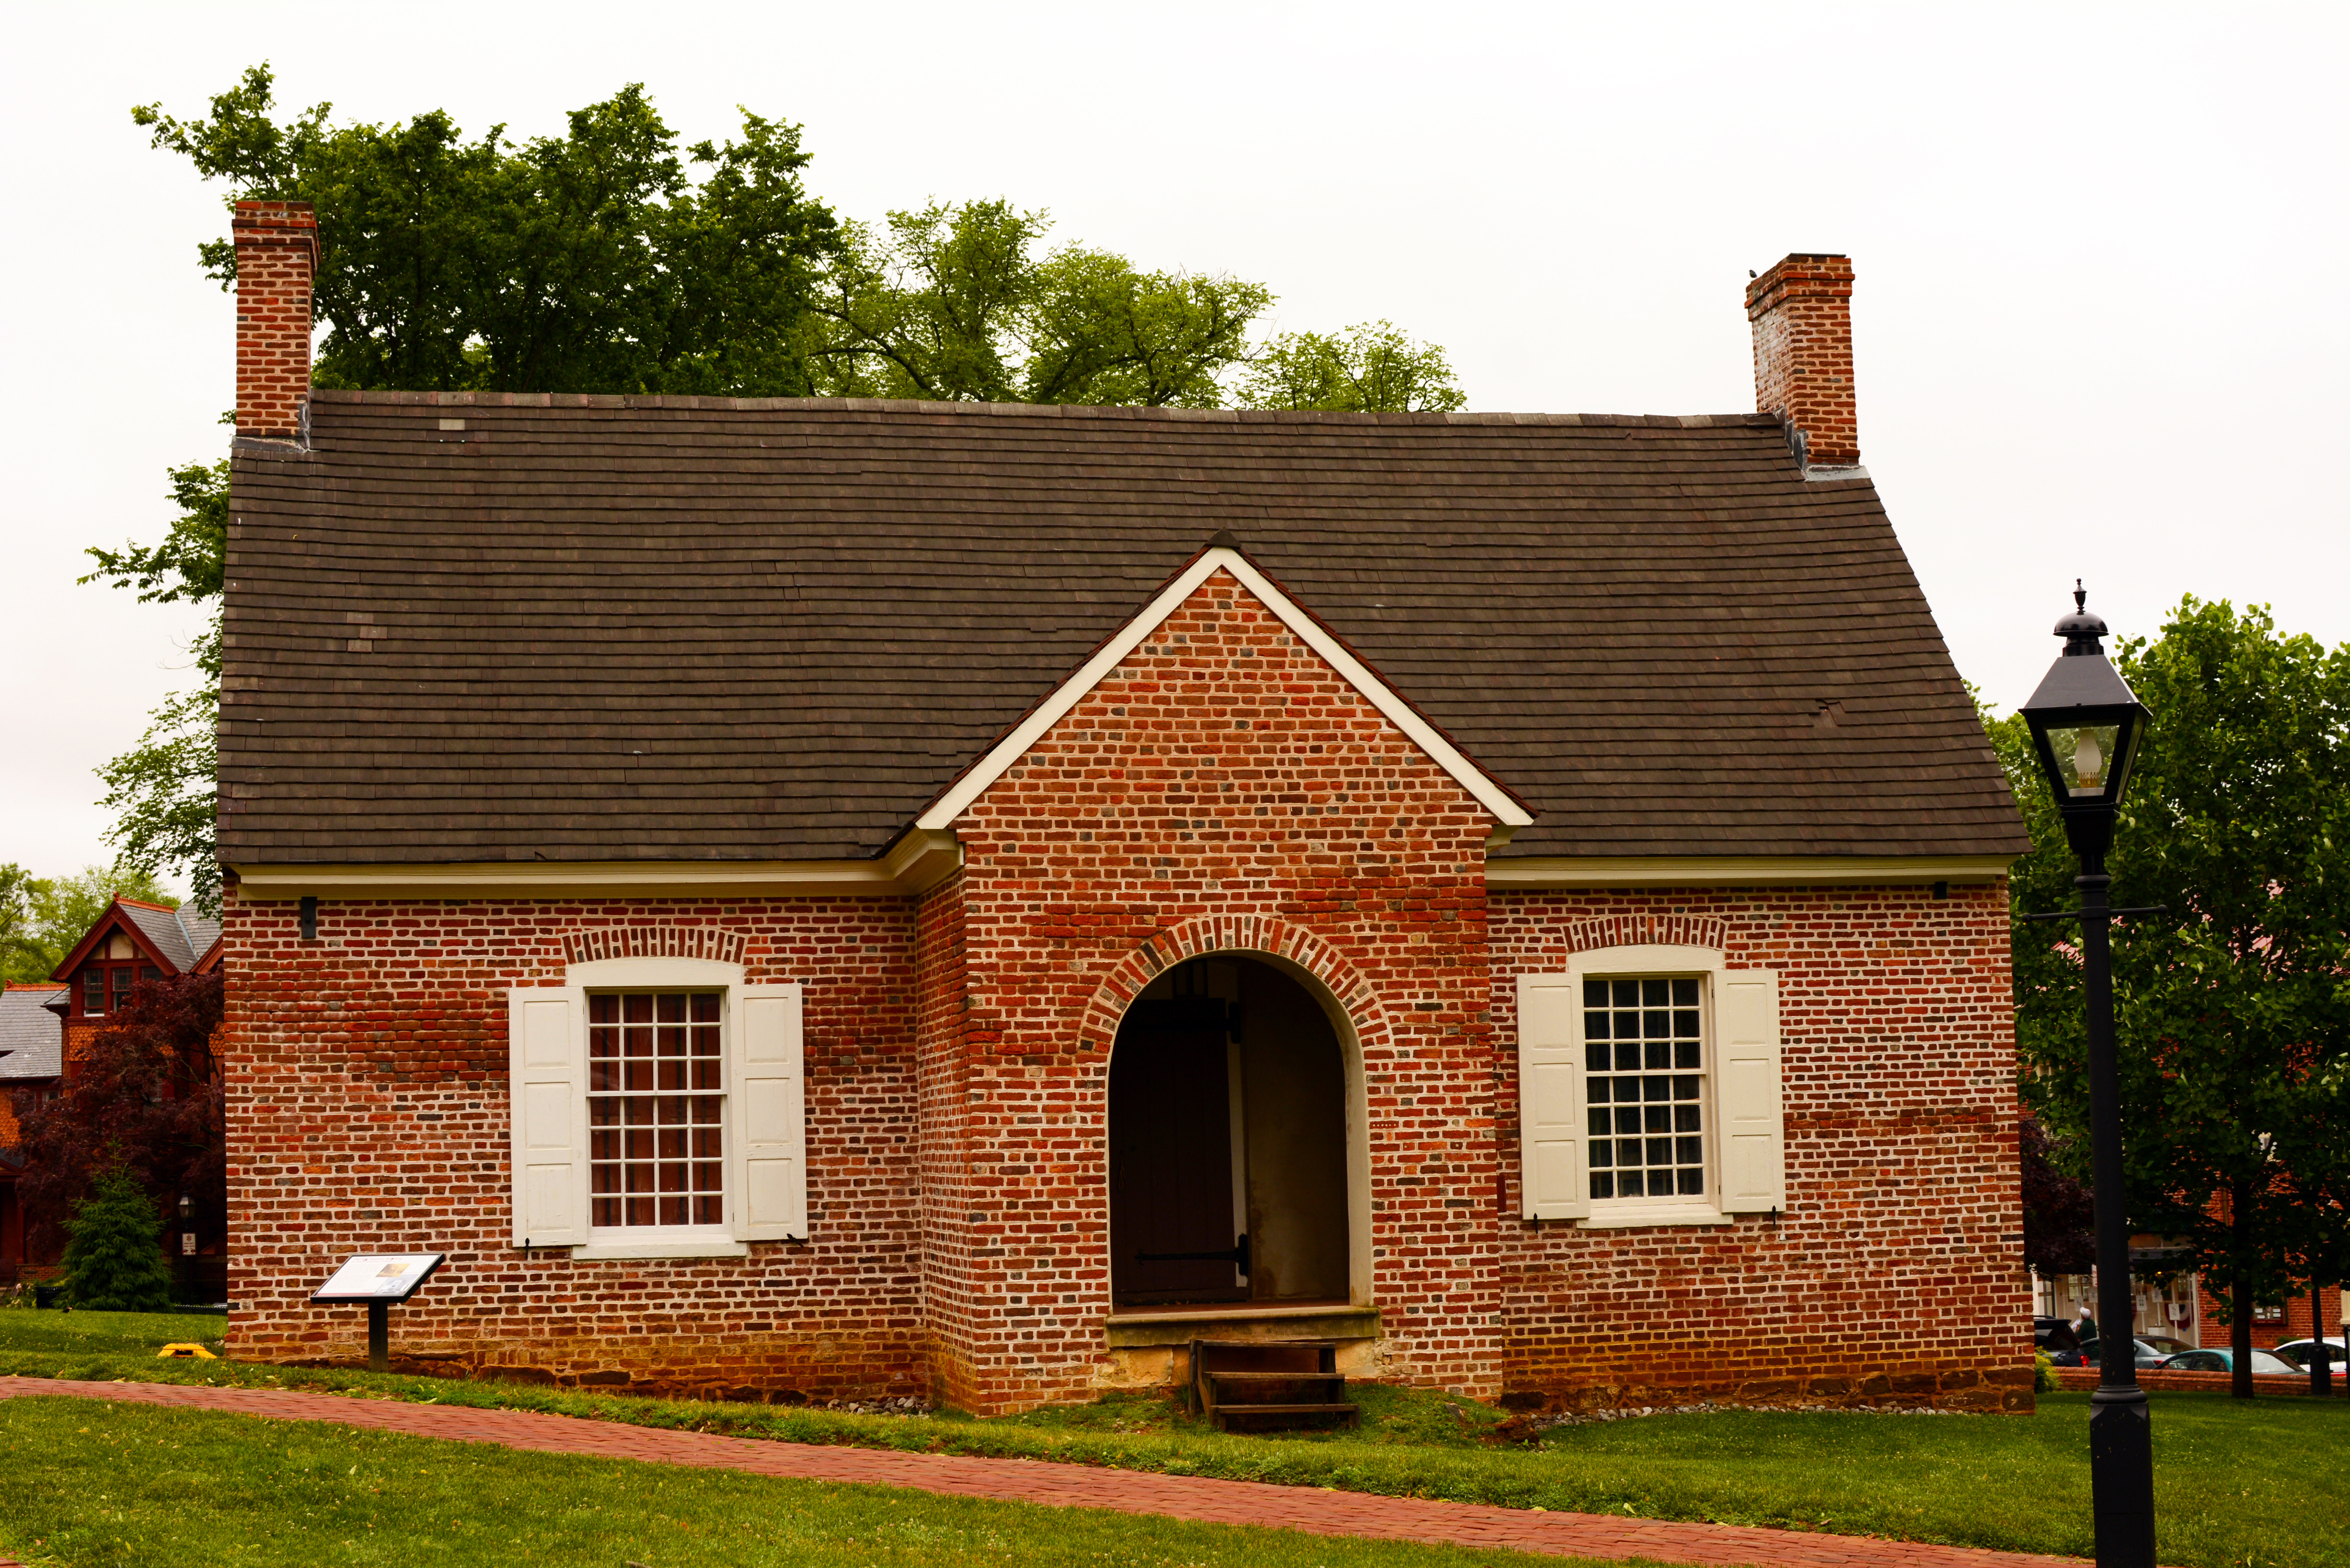 File Annapolis Old Treasury Building from 1735 by D Ramey Logan